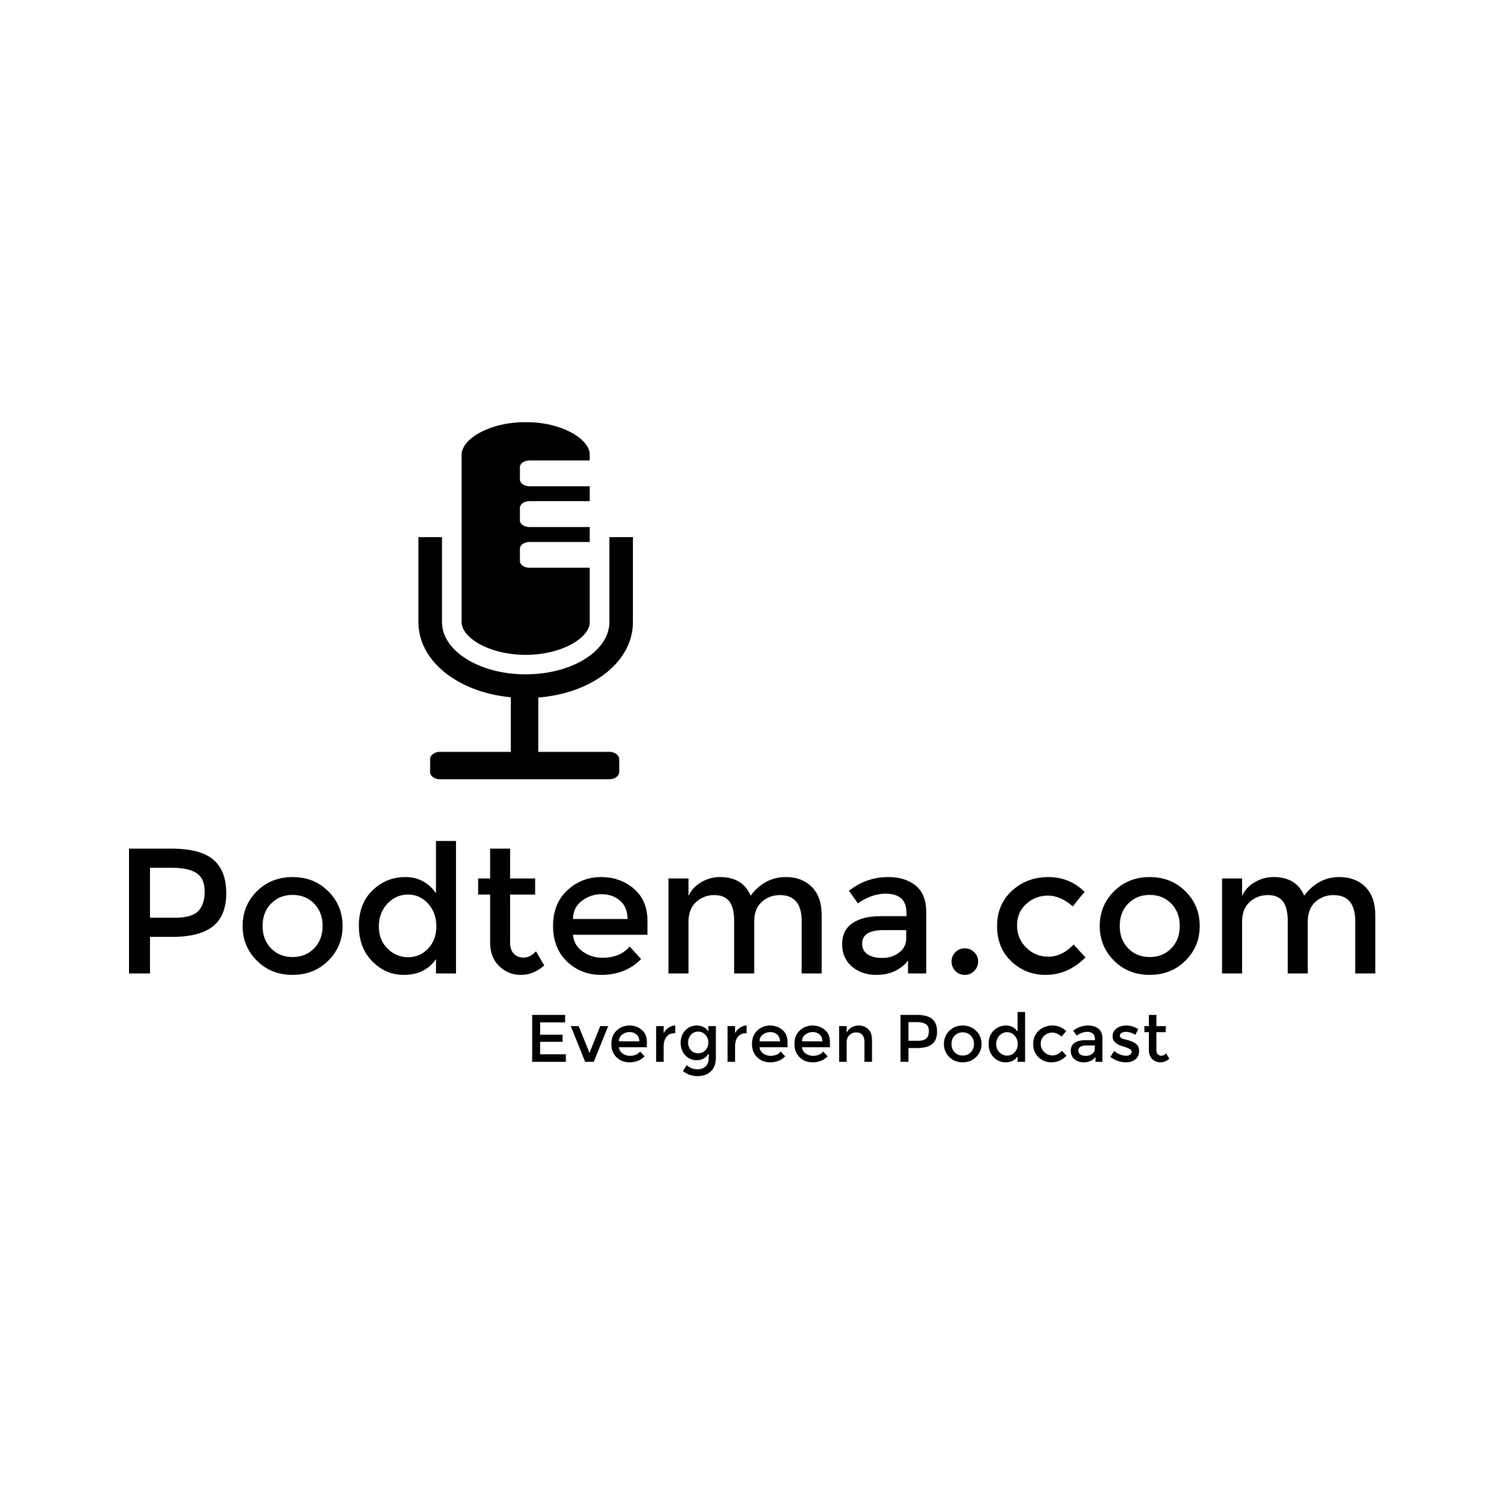 Evergreen Podcast